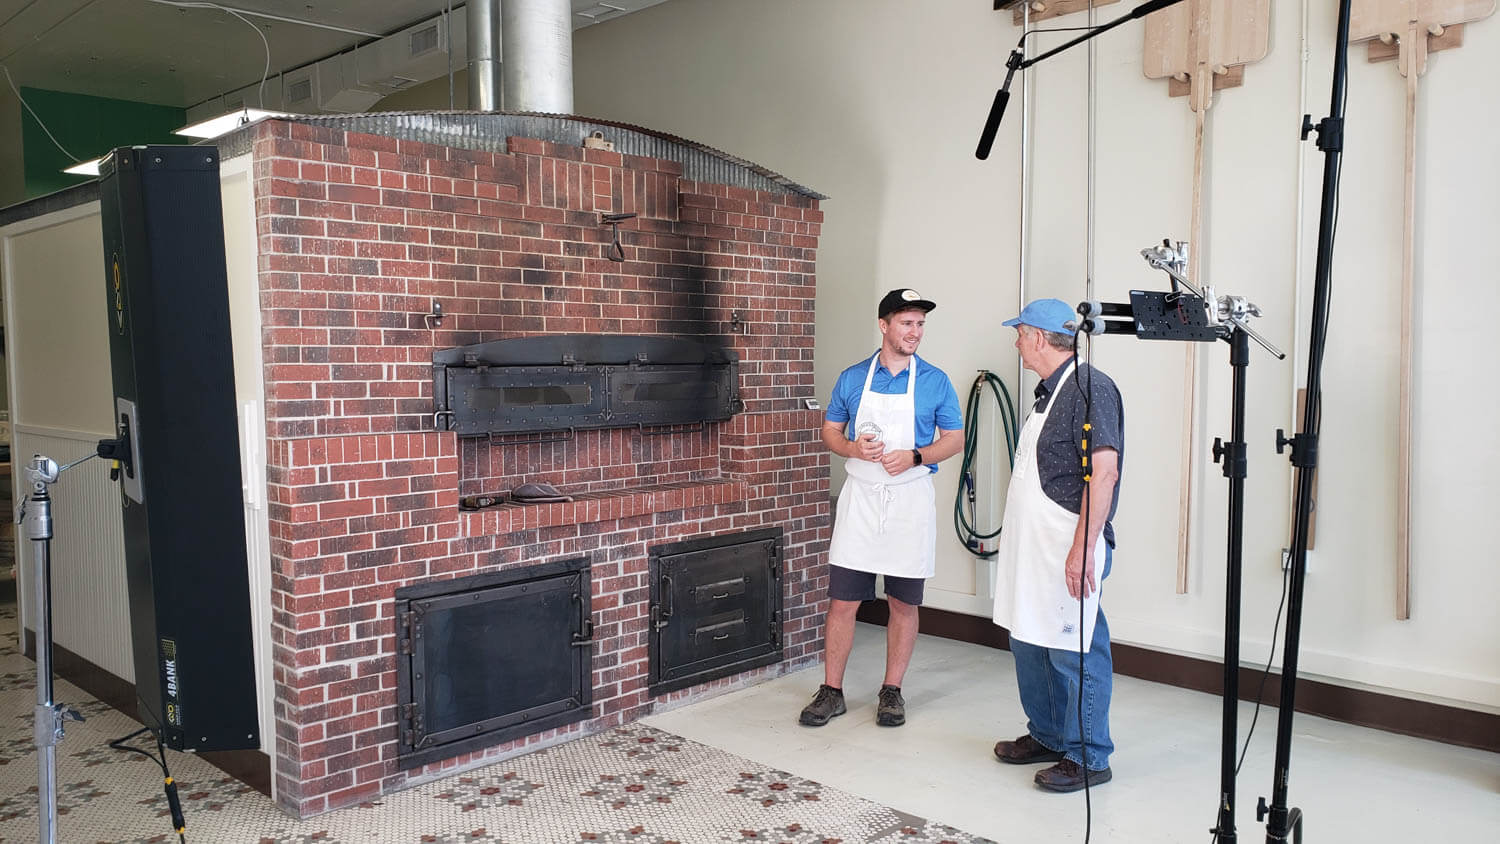 2 people standing in front of a giant brick oven